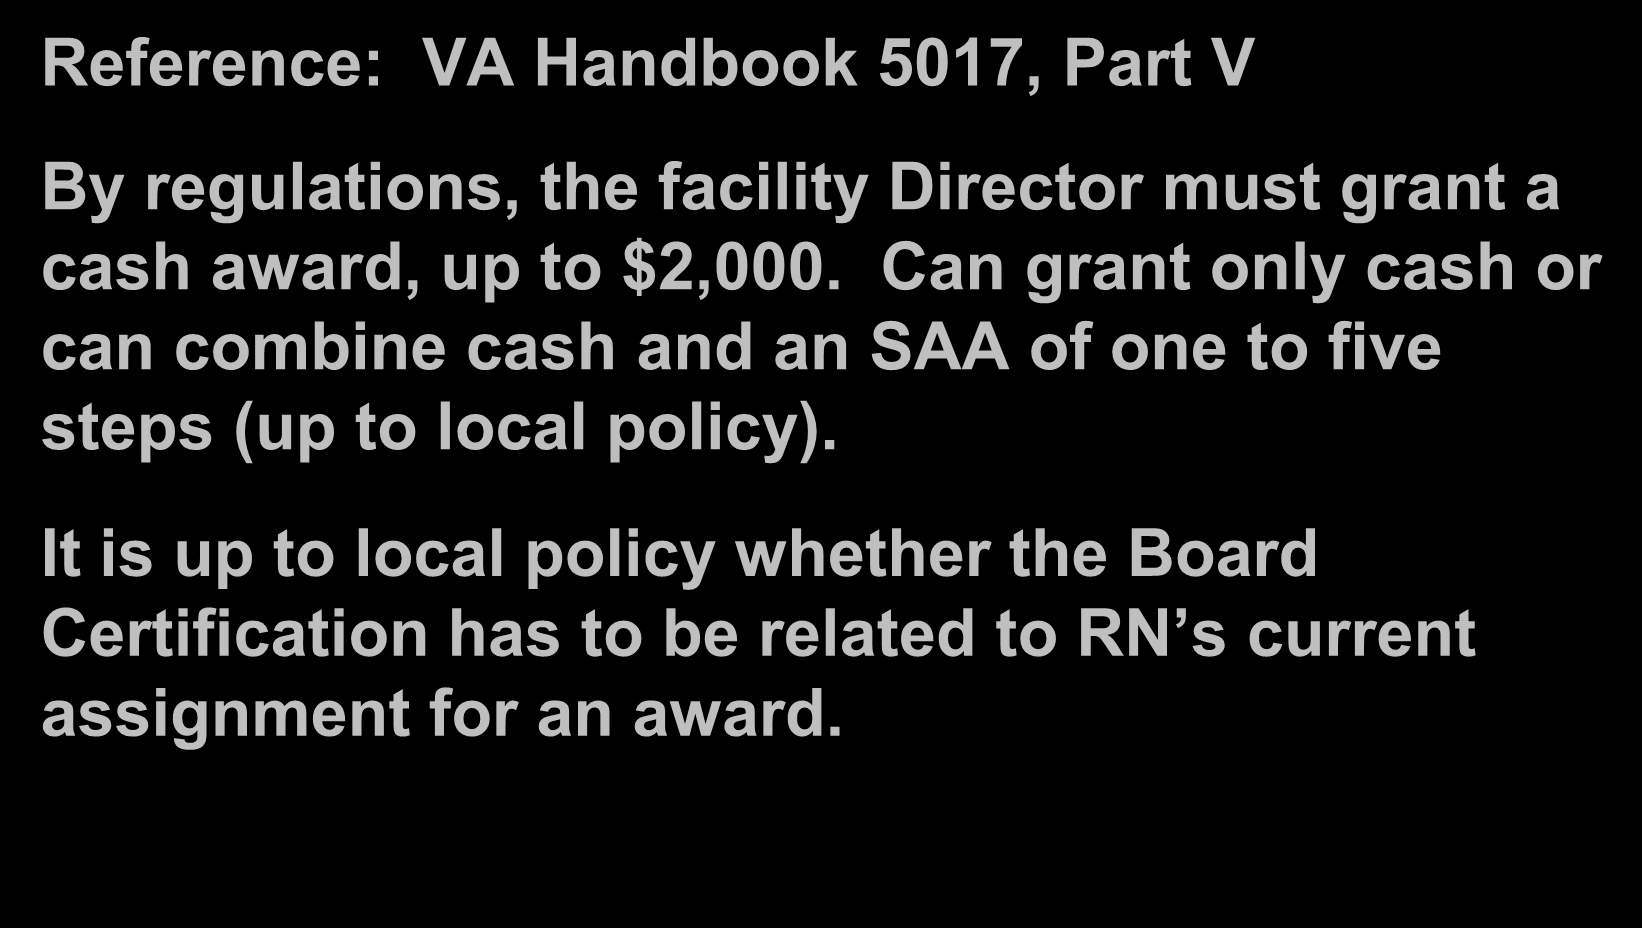 Specialty Certification Award Reference: VA Handbook 5017, Part V By regulations, the facility Director must grant a cash award, up to $2,000.